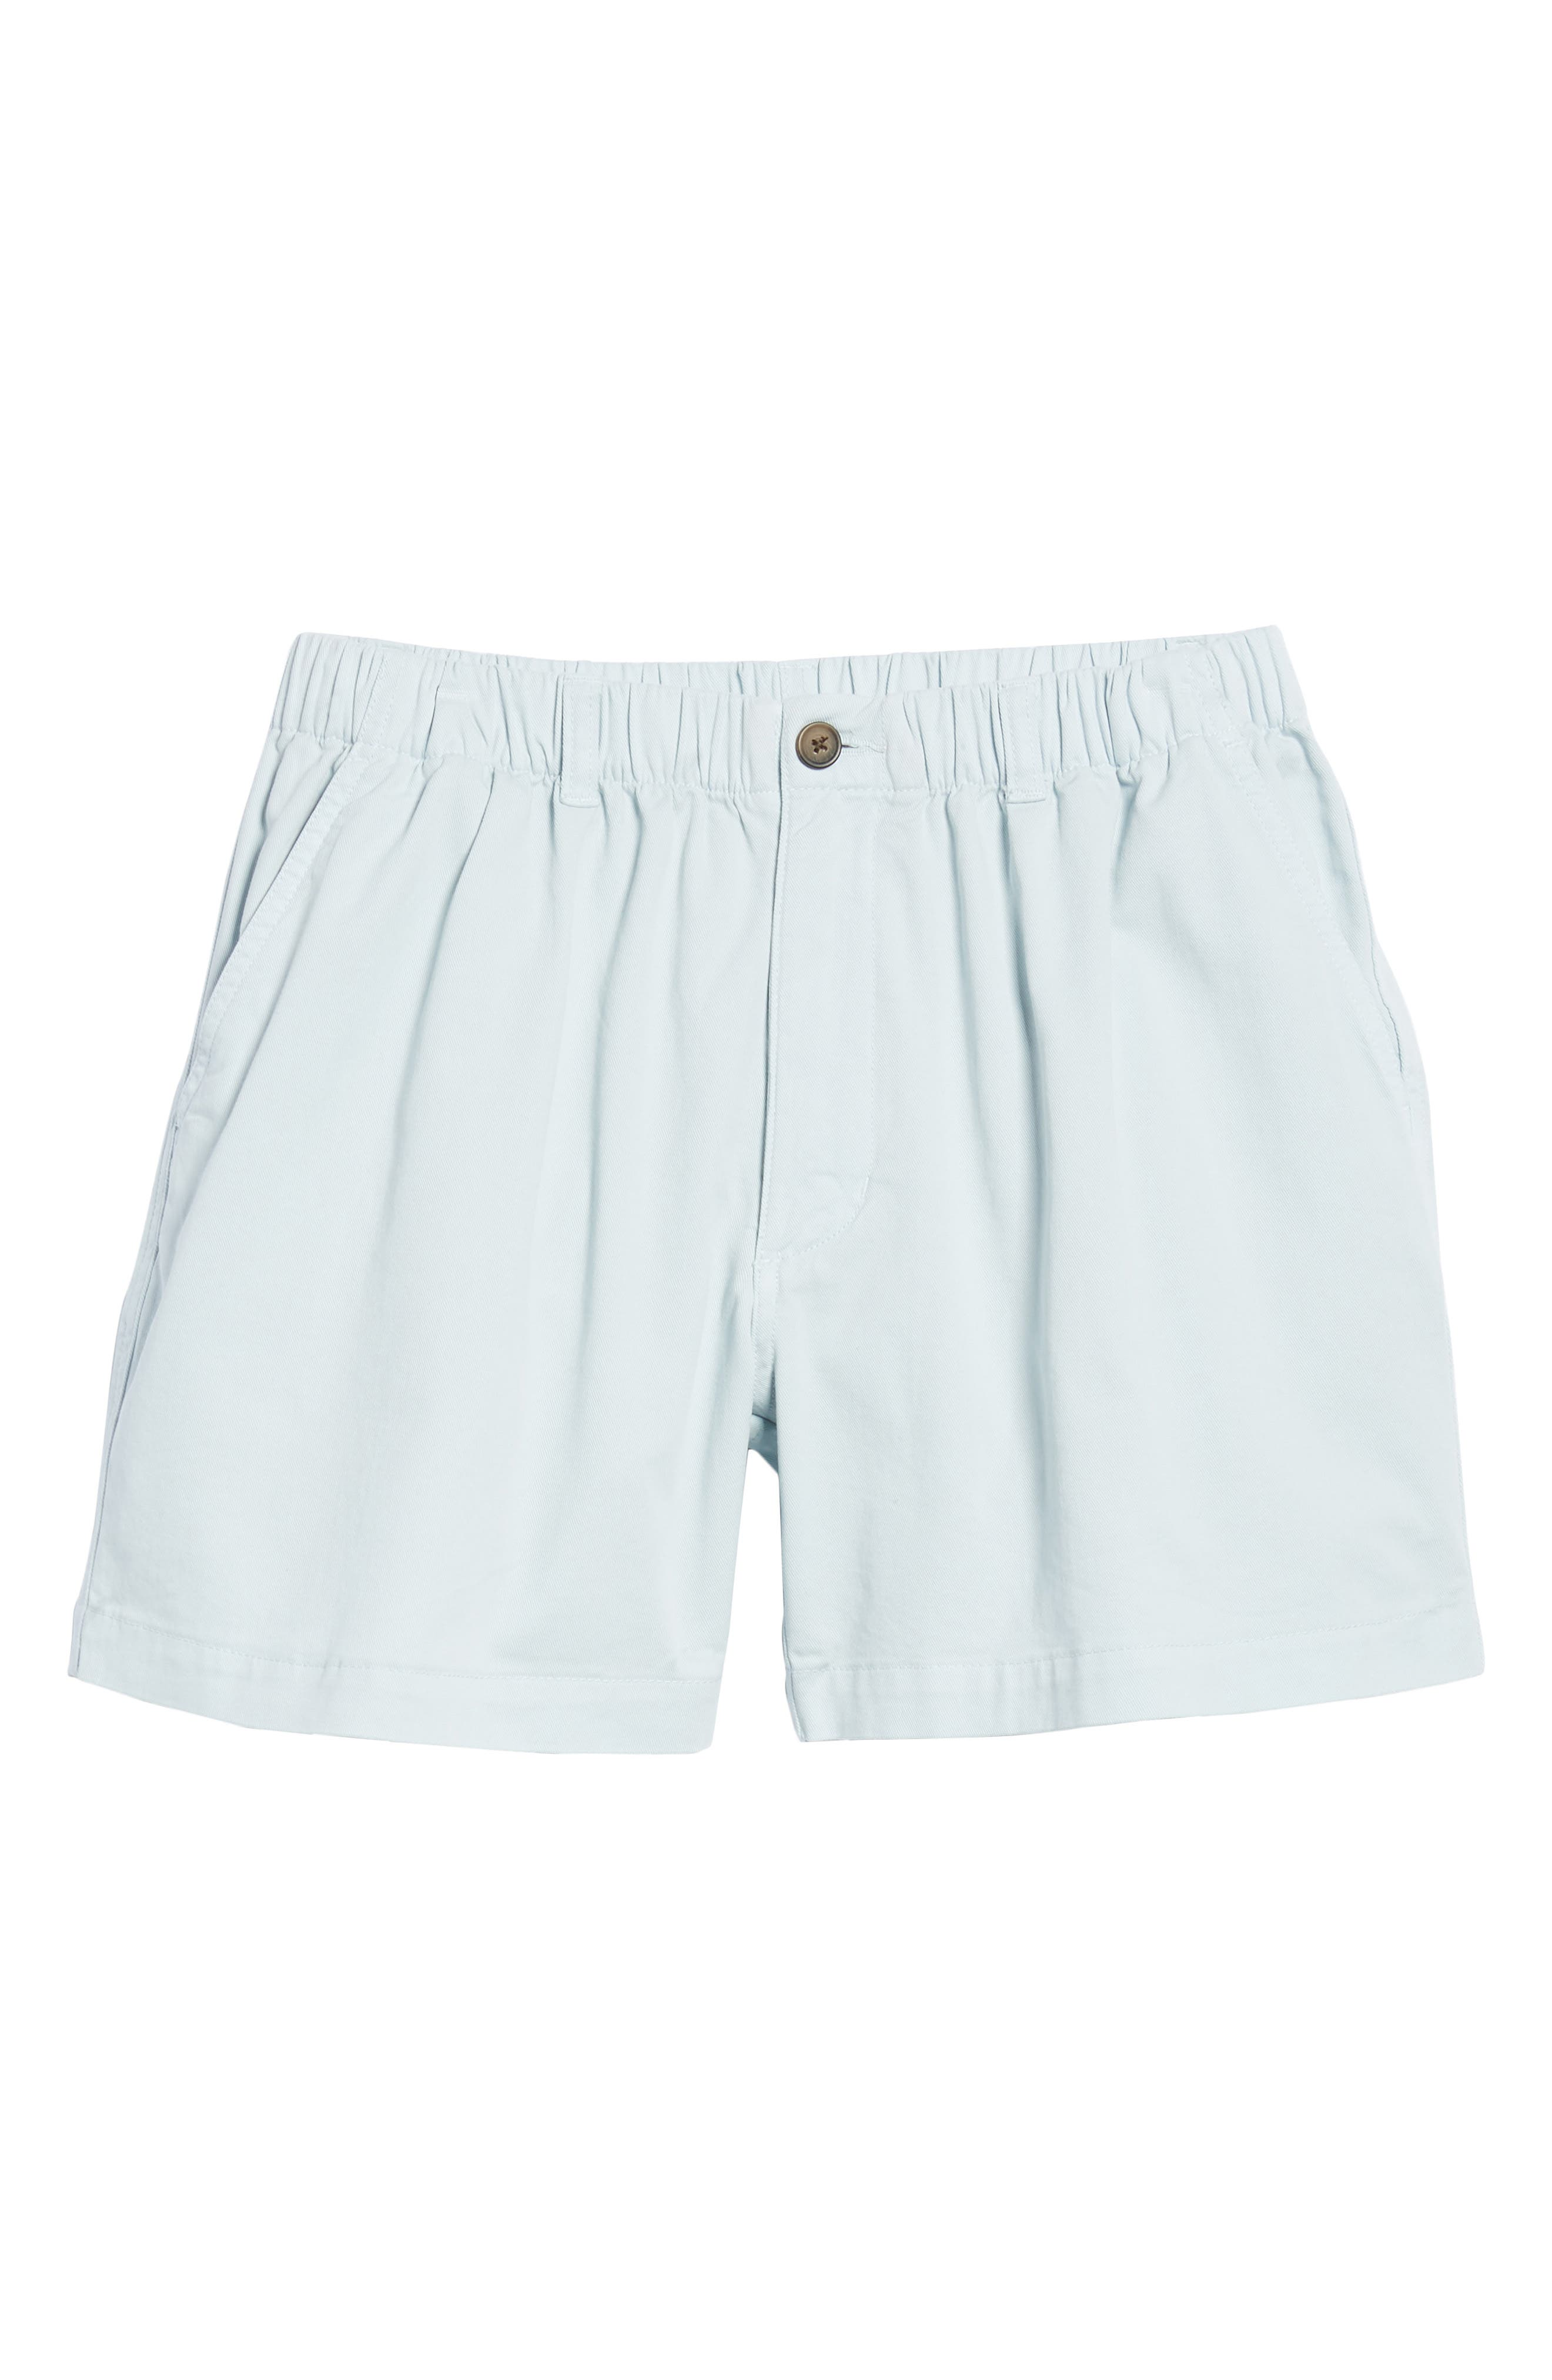 Snappers Elastic Waist 5.5 Inch Stretch Shorts,                             Alternate thumbnail 6, color,                             Sky